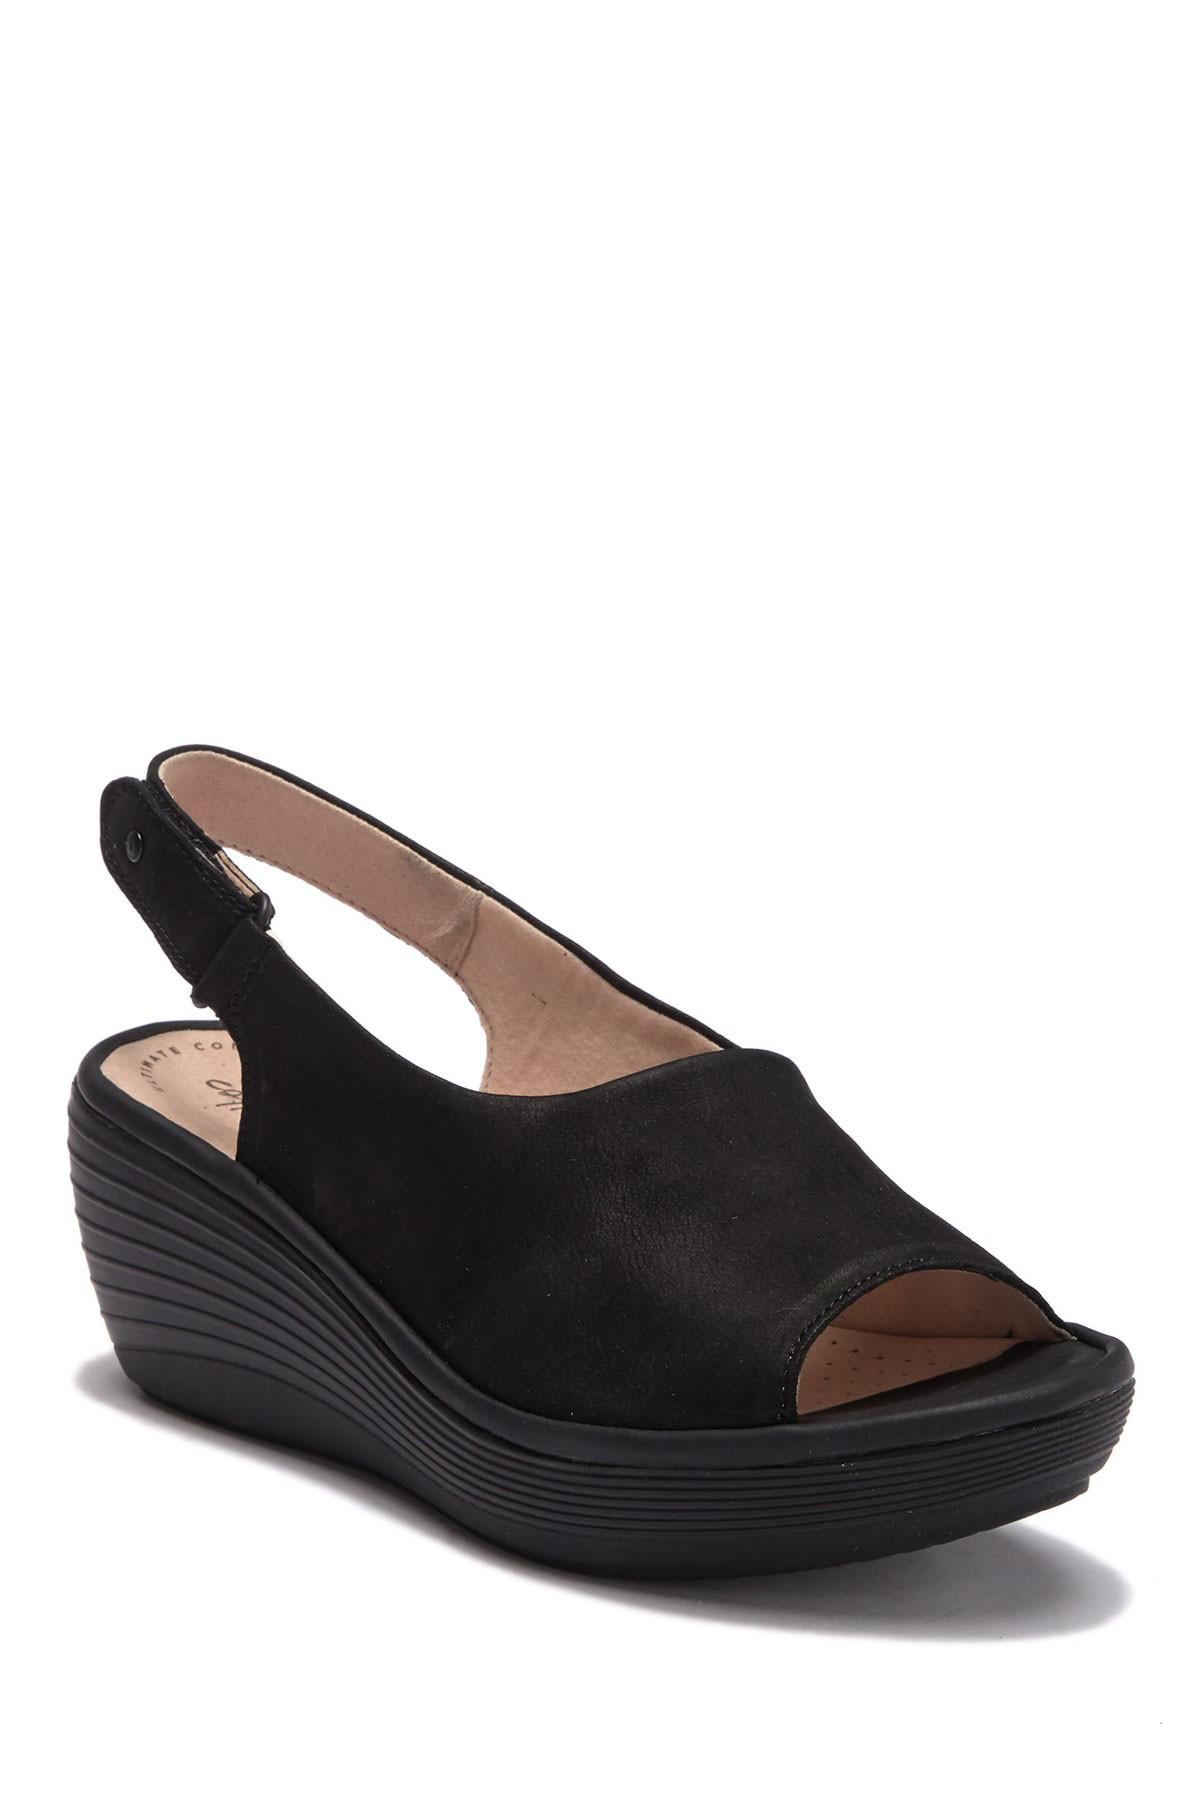 9b2abb51f0e Clarks Reedly Shaina Wedge Sandal in Black - Save 40% - Lyst